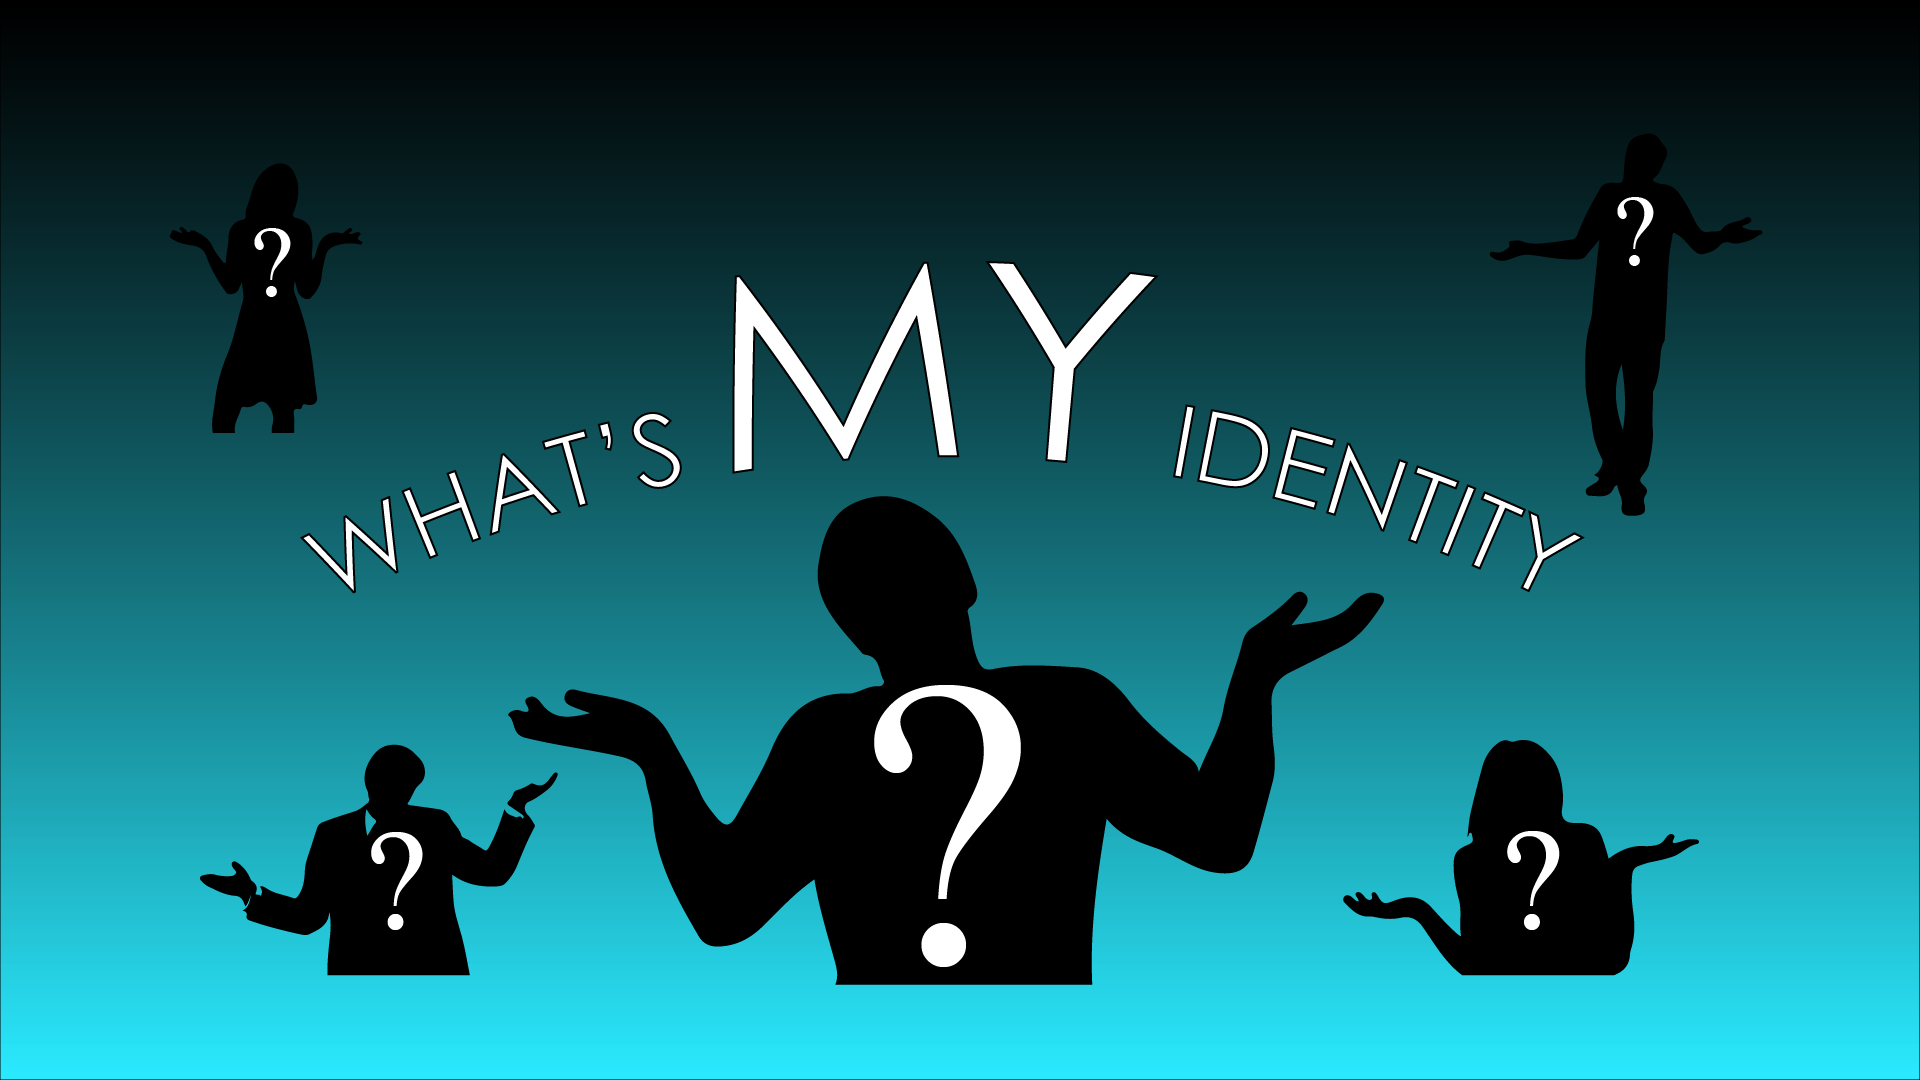 how your ethnic or cultural background shaped your personal identity A cultural identity essay is a paper that you write exploring and explaining how your place of upbringing, ethnicity, religion, socio-economic status, and family dynamics among other factors created your identity as.